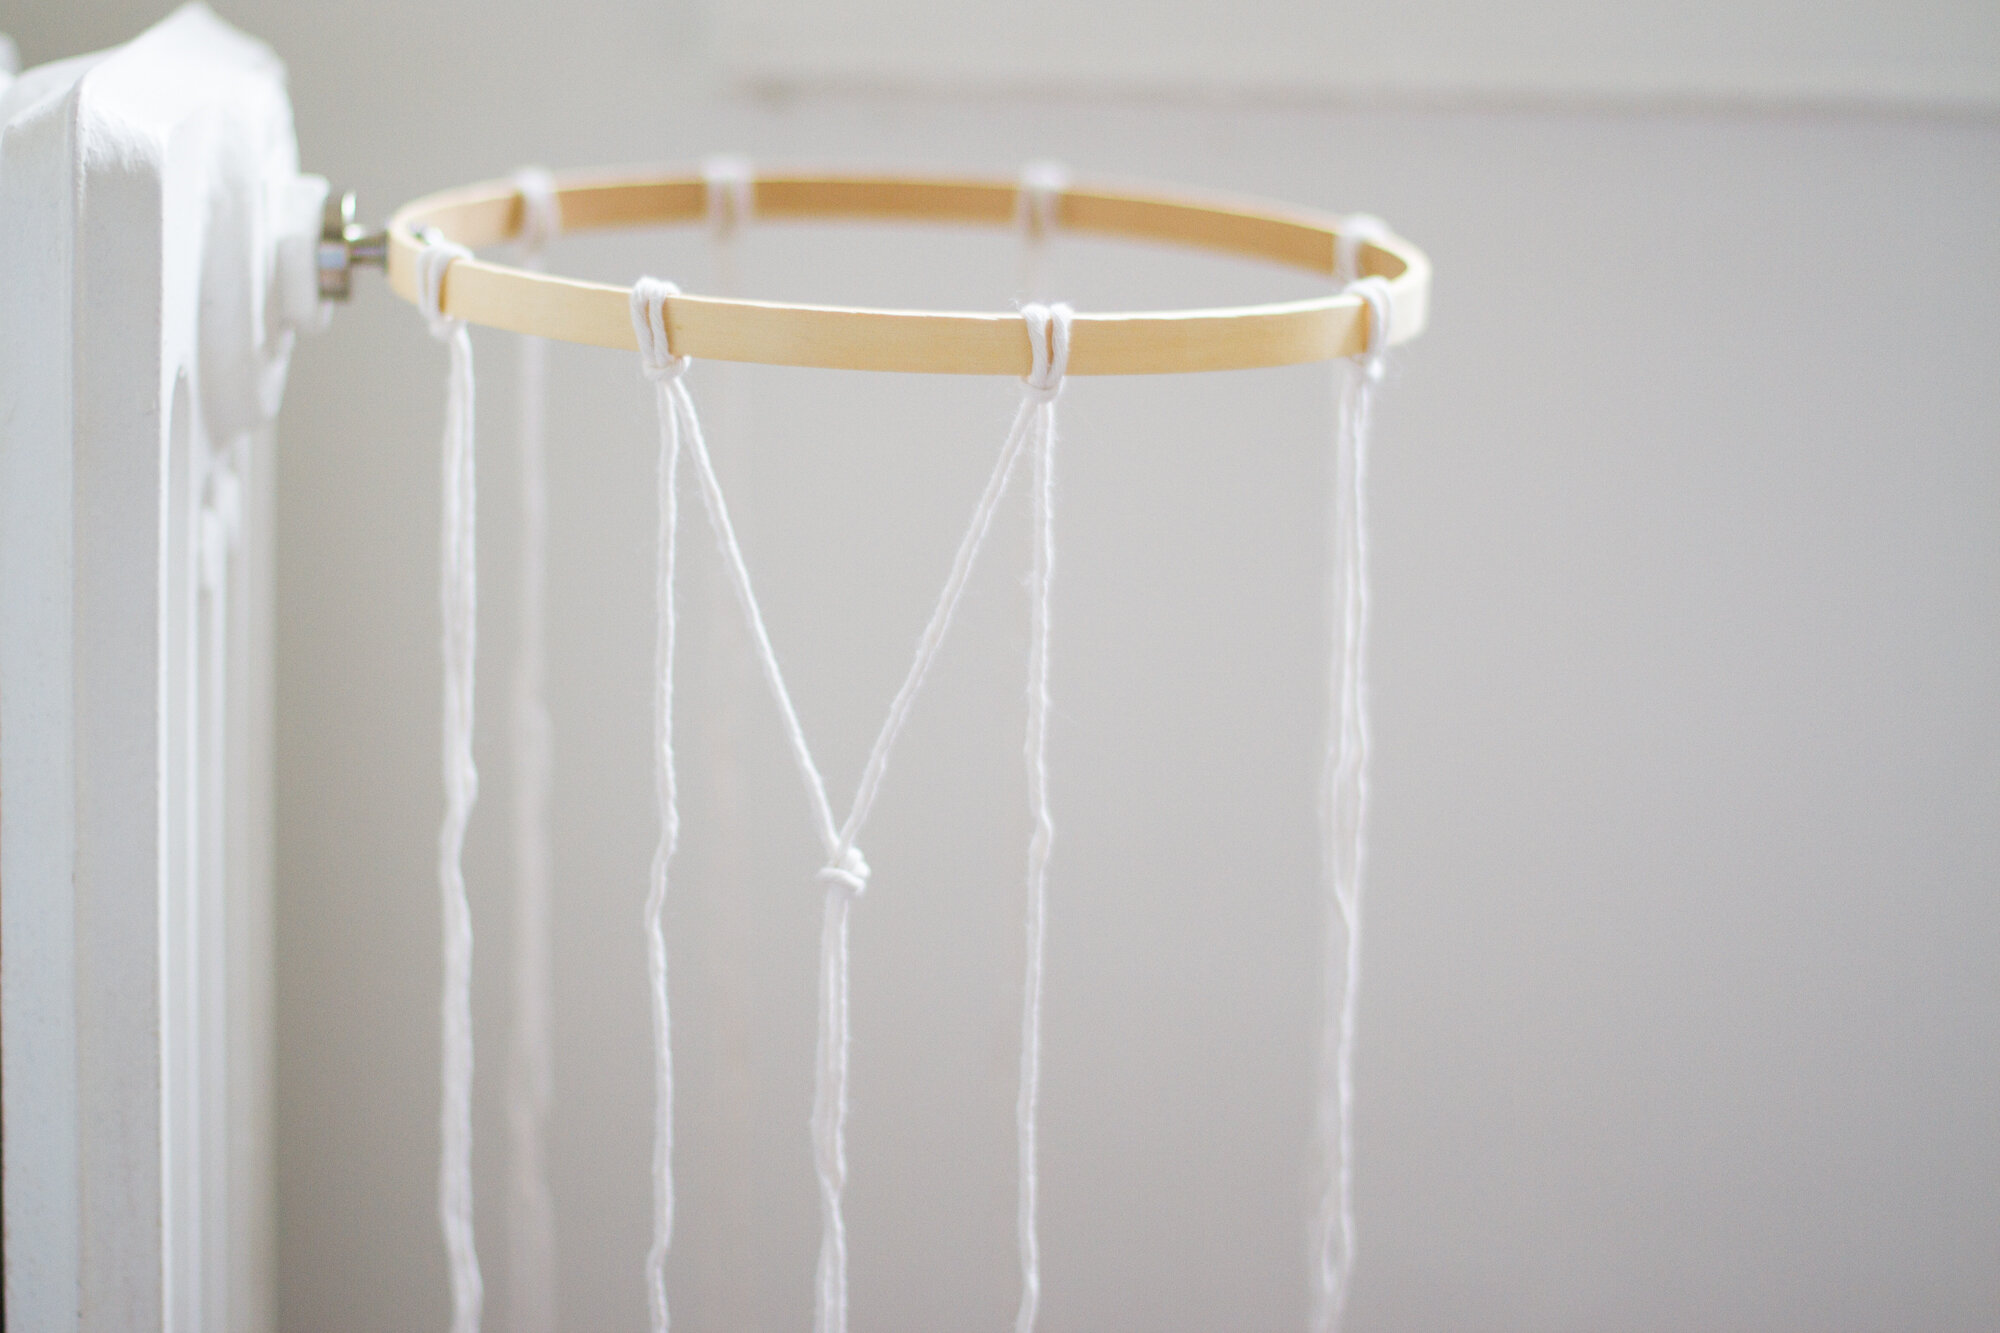 how to turn an embroidery hoop into a basketball hoop | reading my tea leaves